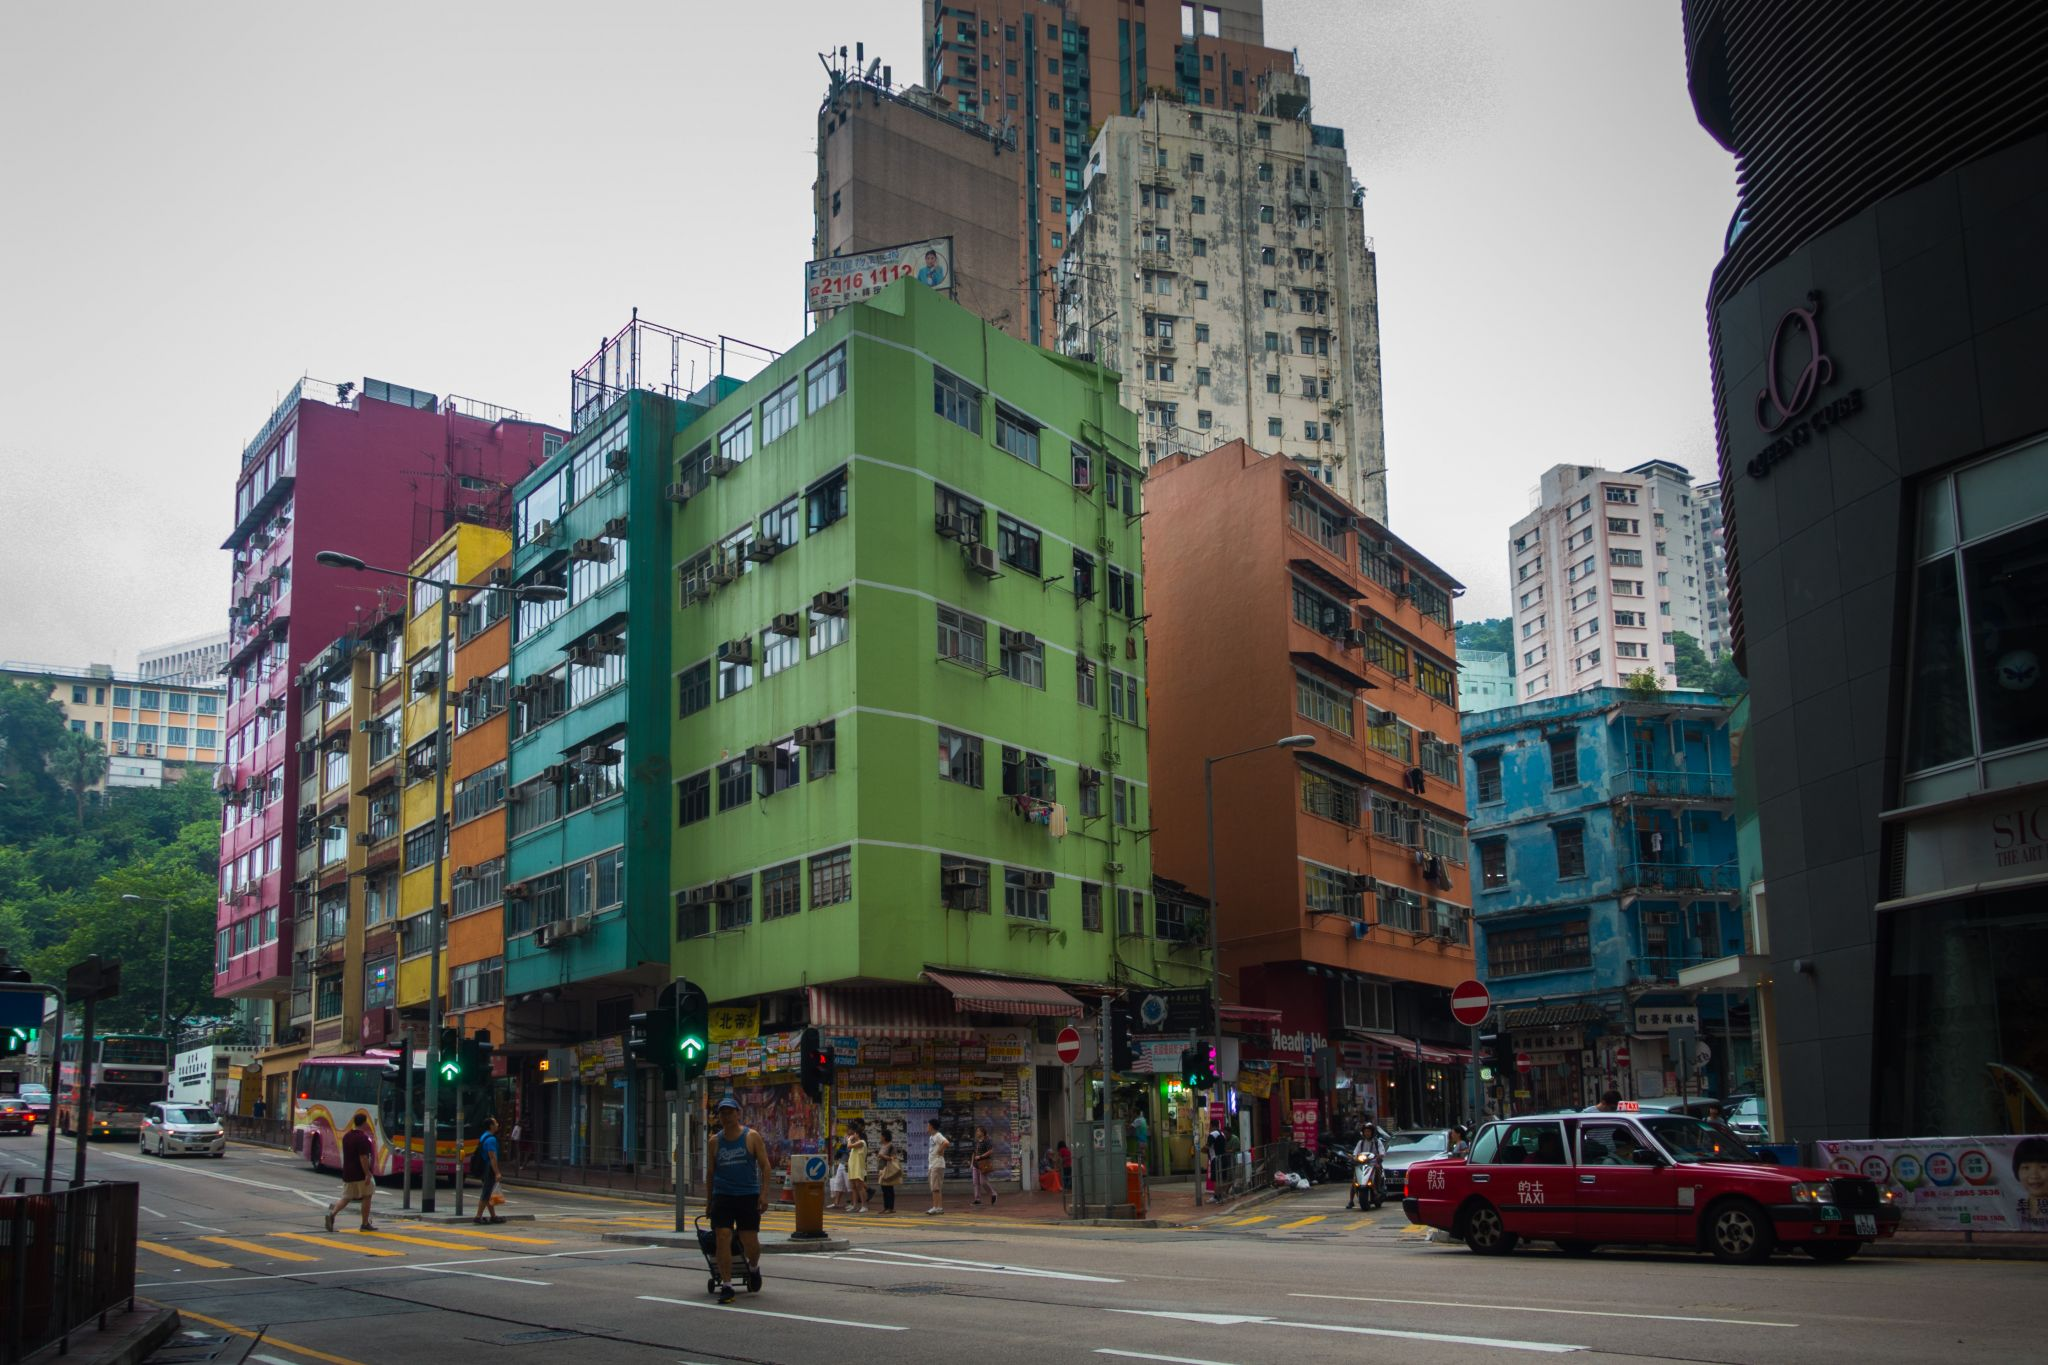 Blue House, and other colorful buildings, Hong Kong